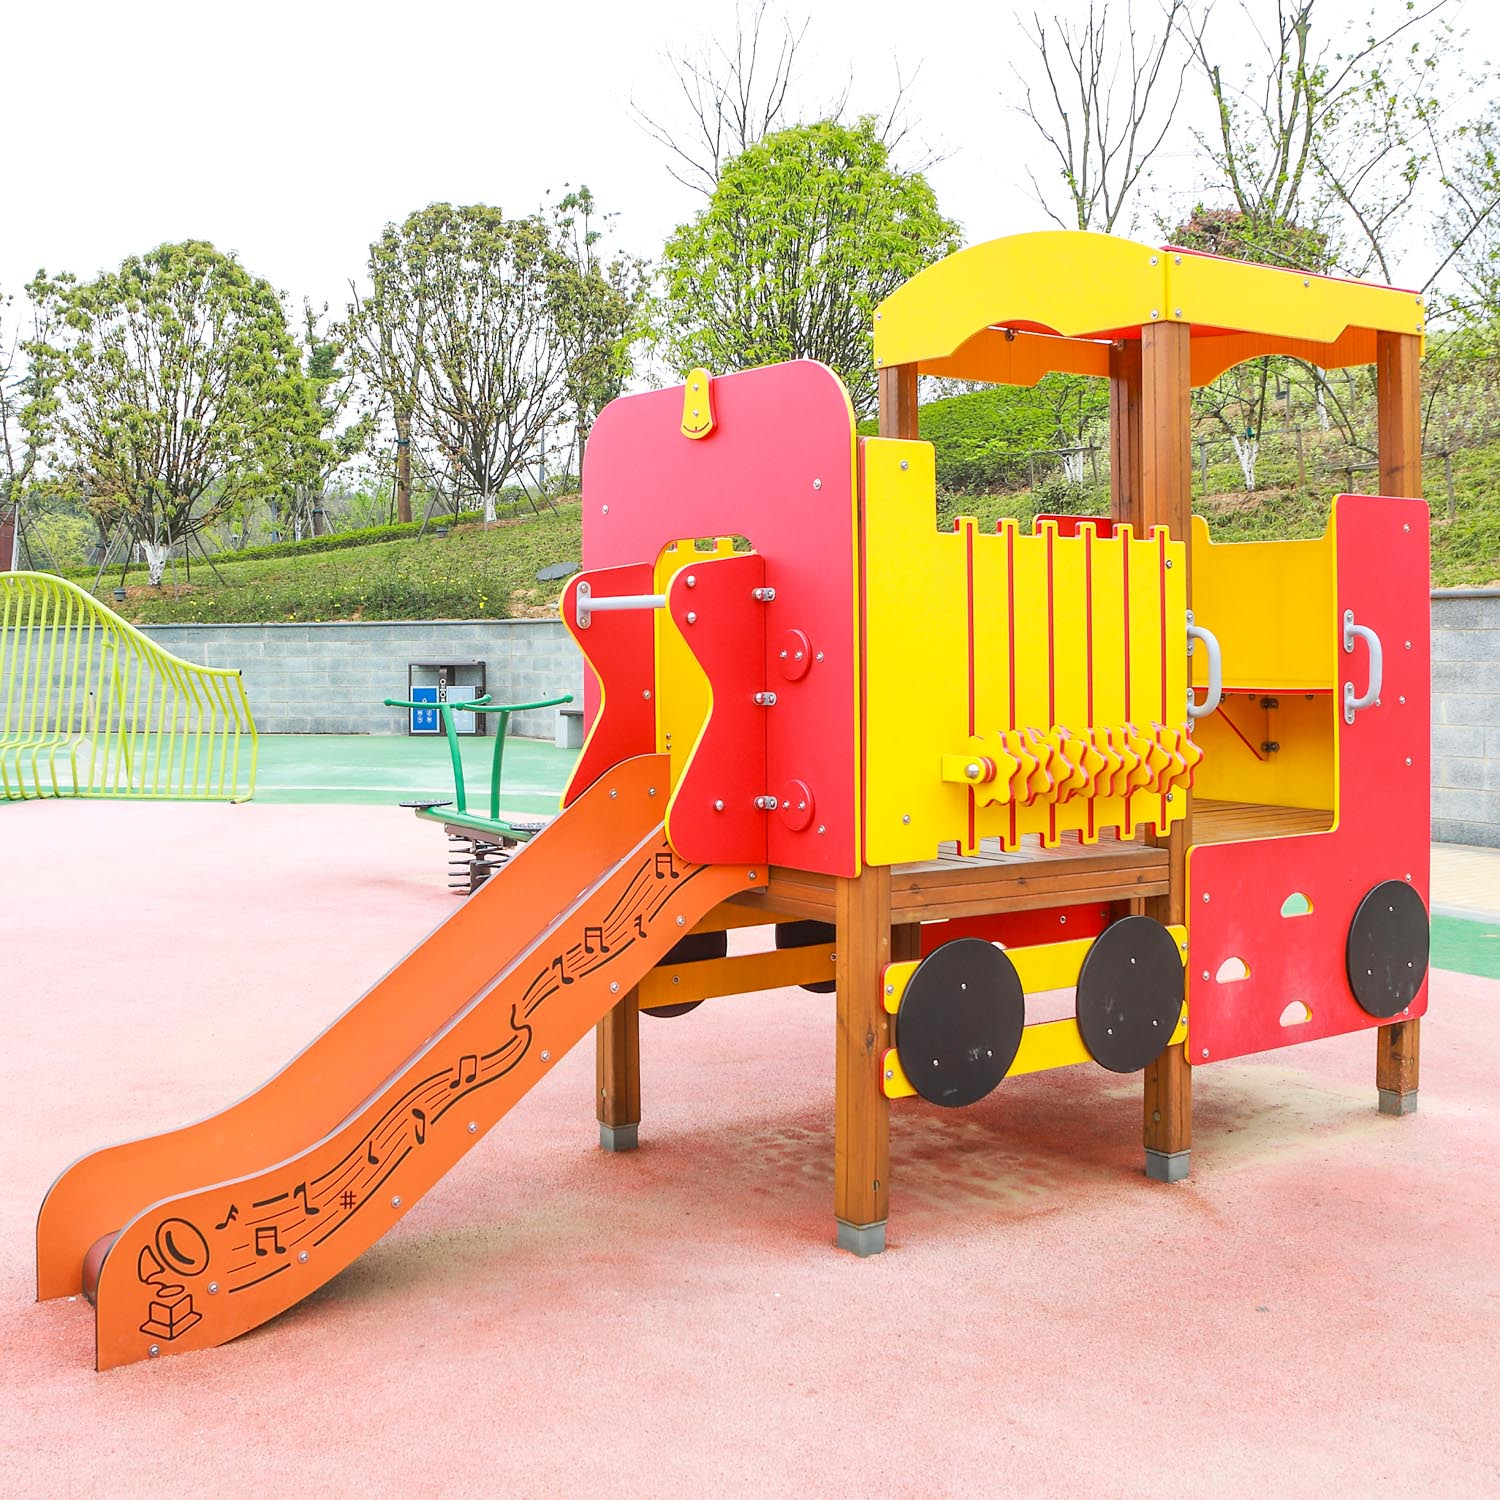 Buy plastic playground to your baby, you need know these common sense.